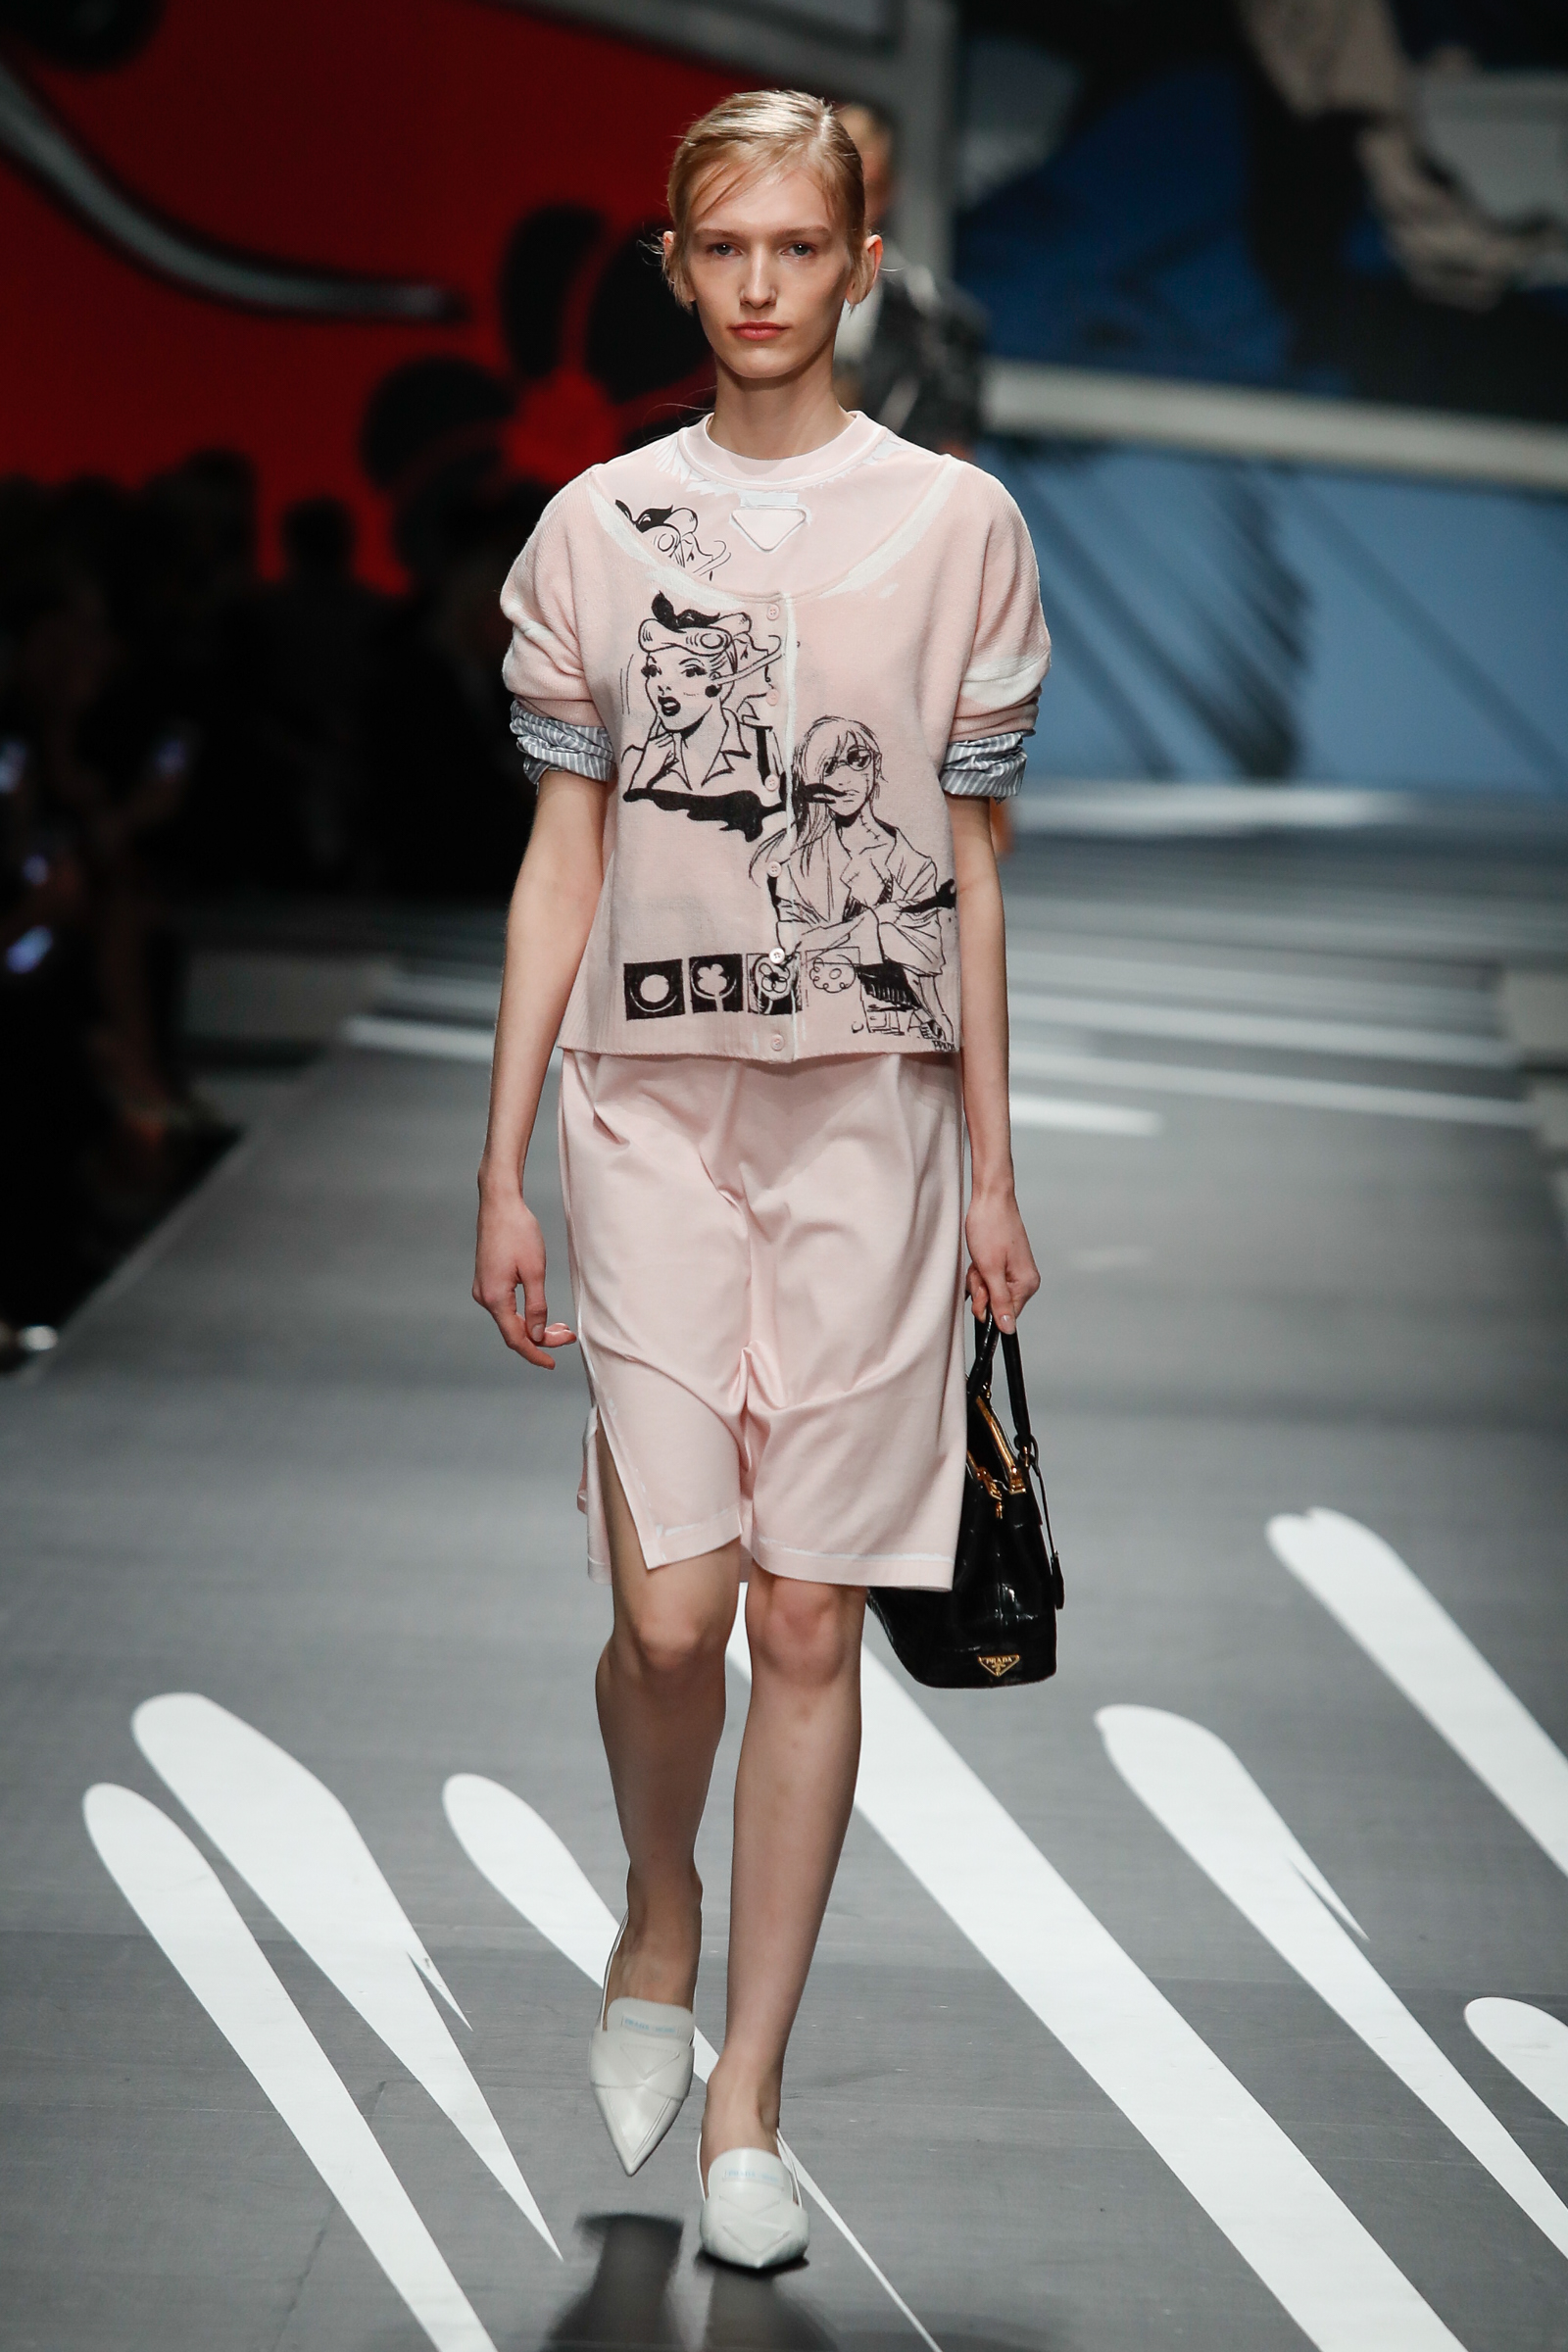 dc4fa8fc4f09 Preppy Prada: Spring/Summer 2018 Collection - MODERN CULTURE OF ...